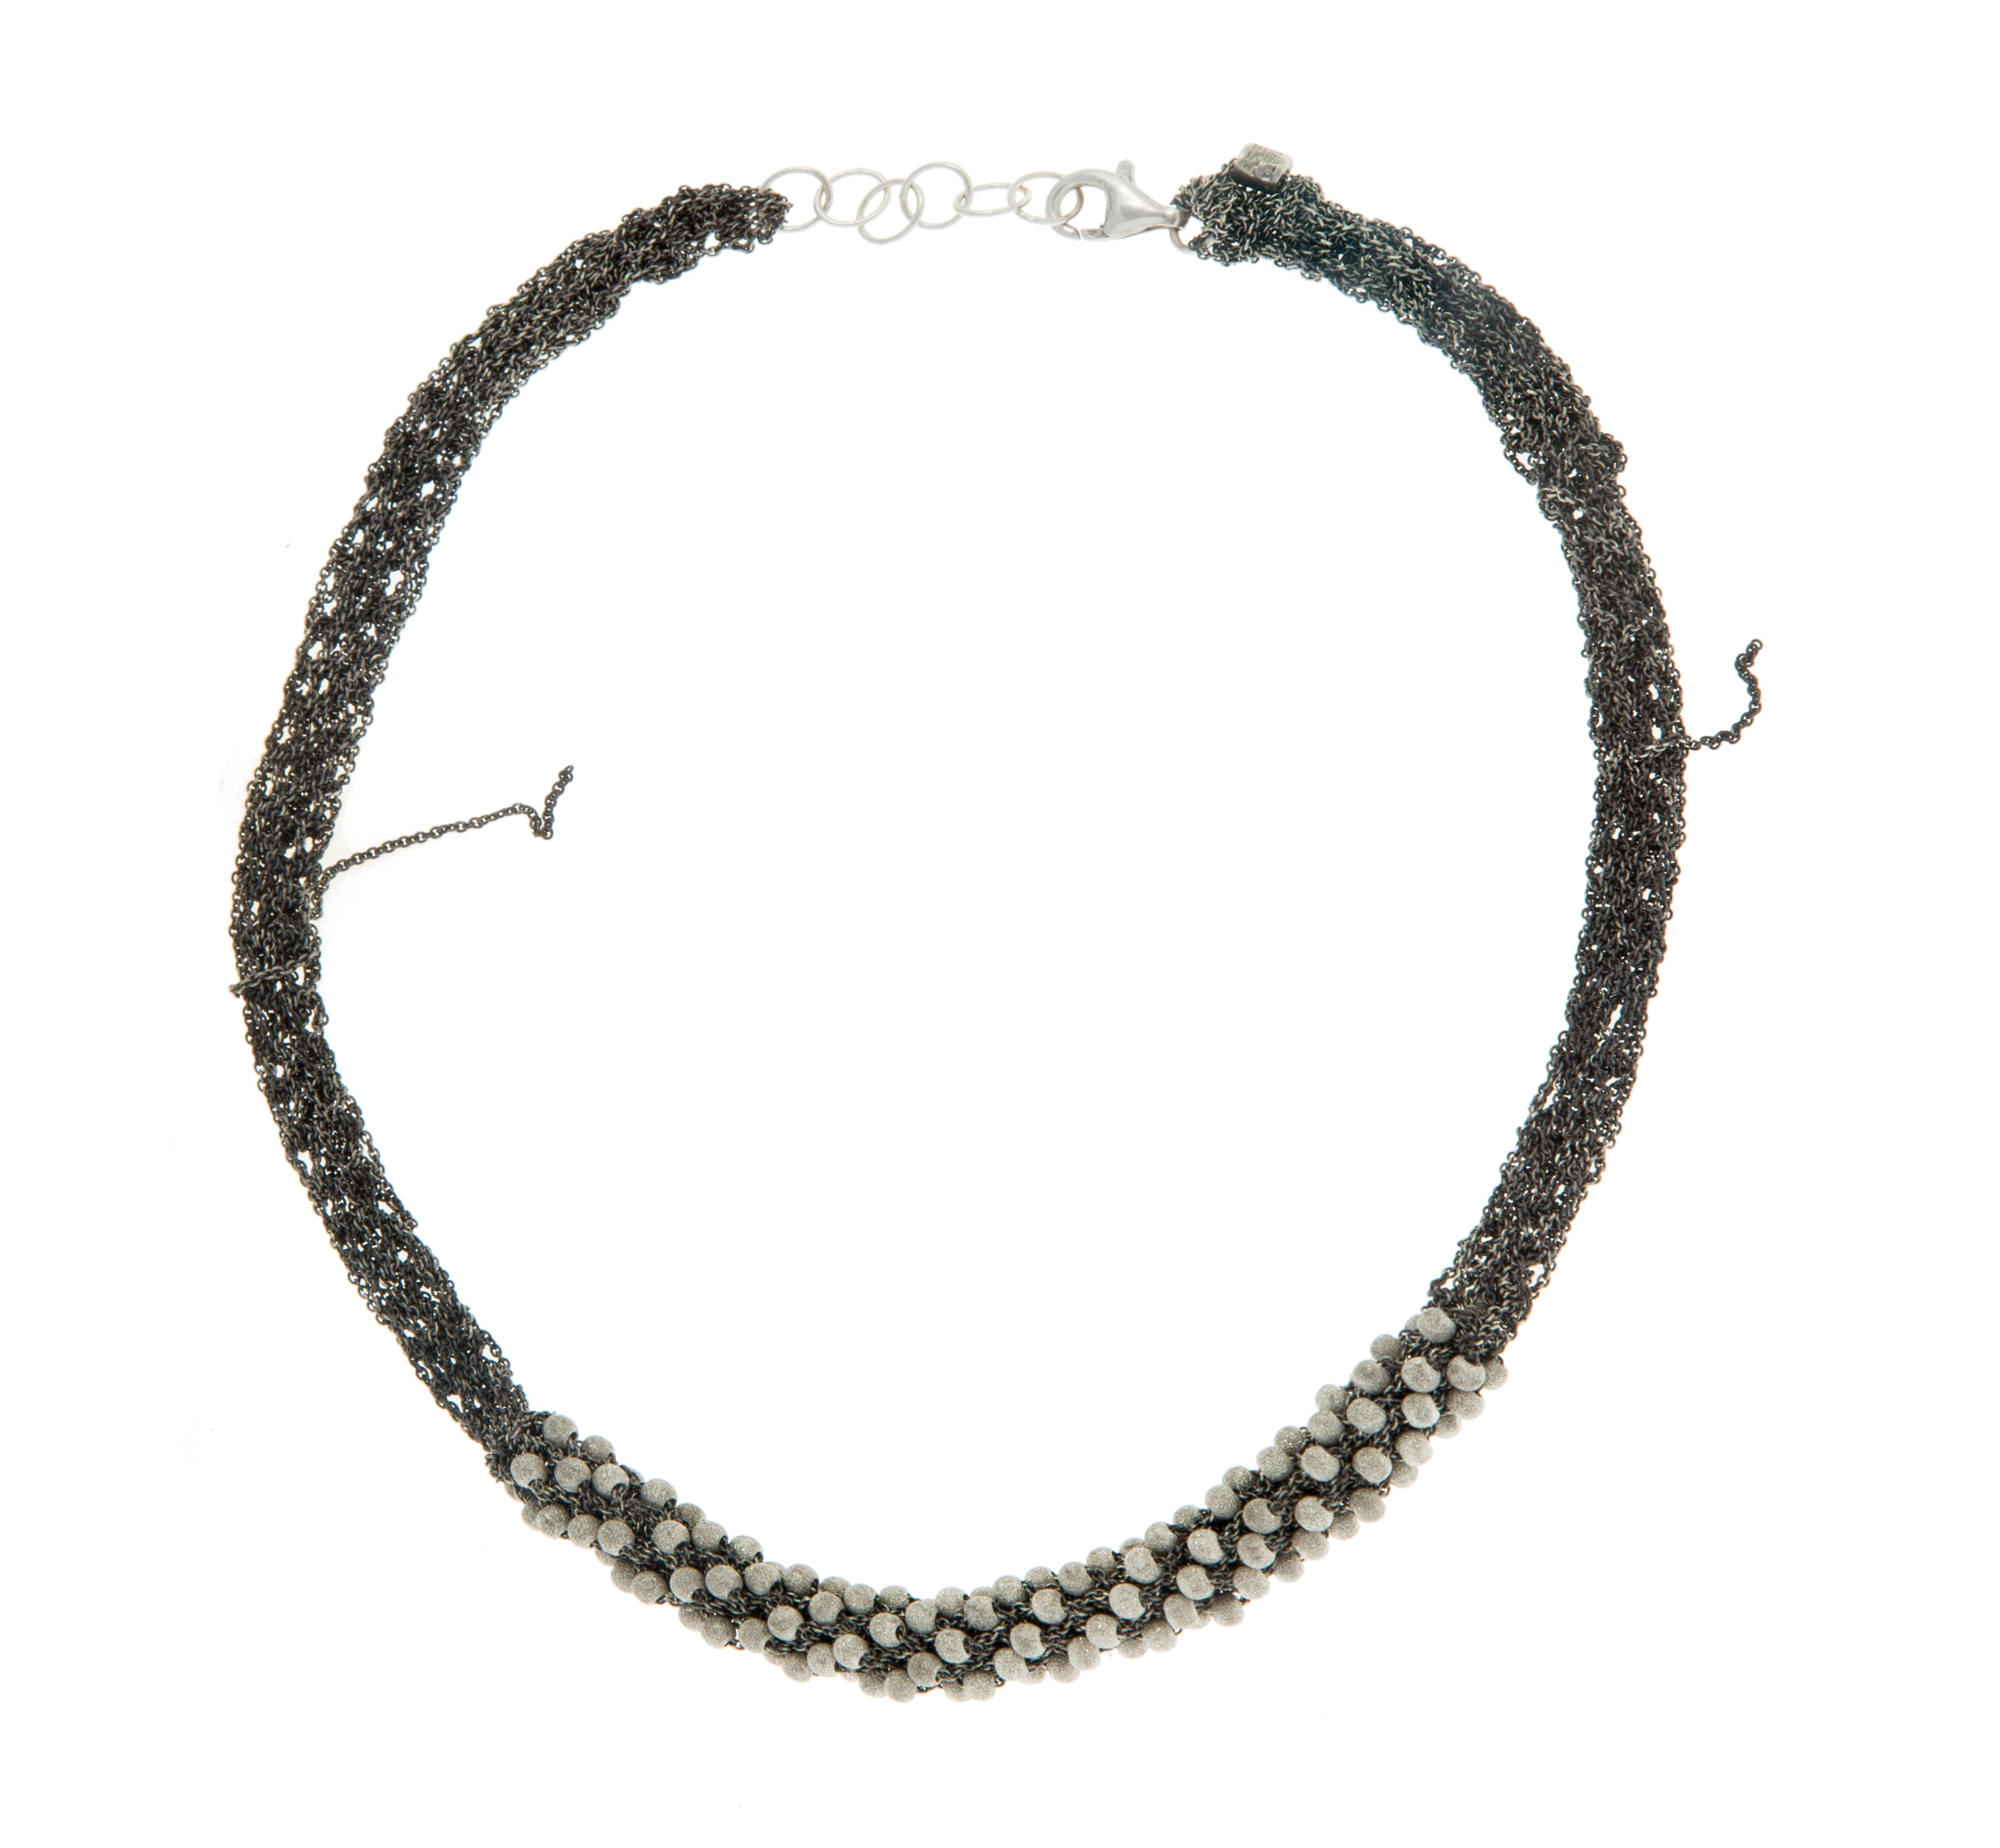 Mumps Necklace in Midnight w/Silver Stardust Beads